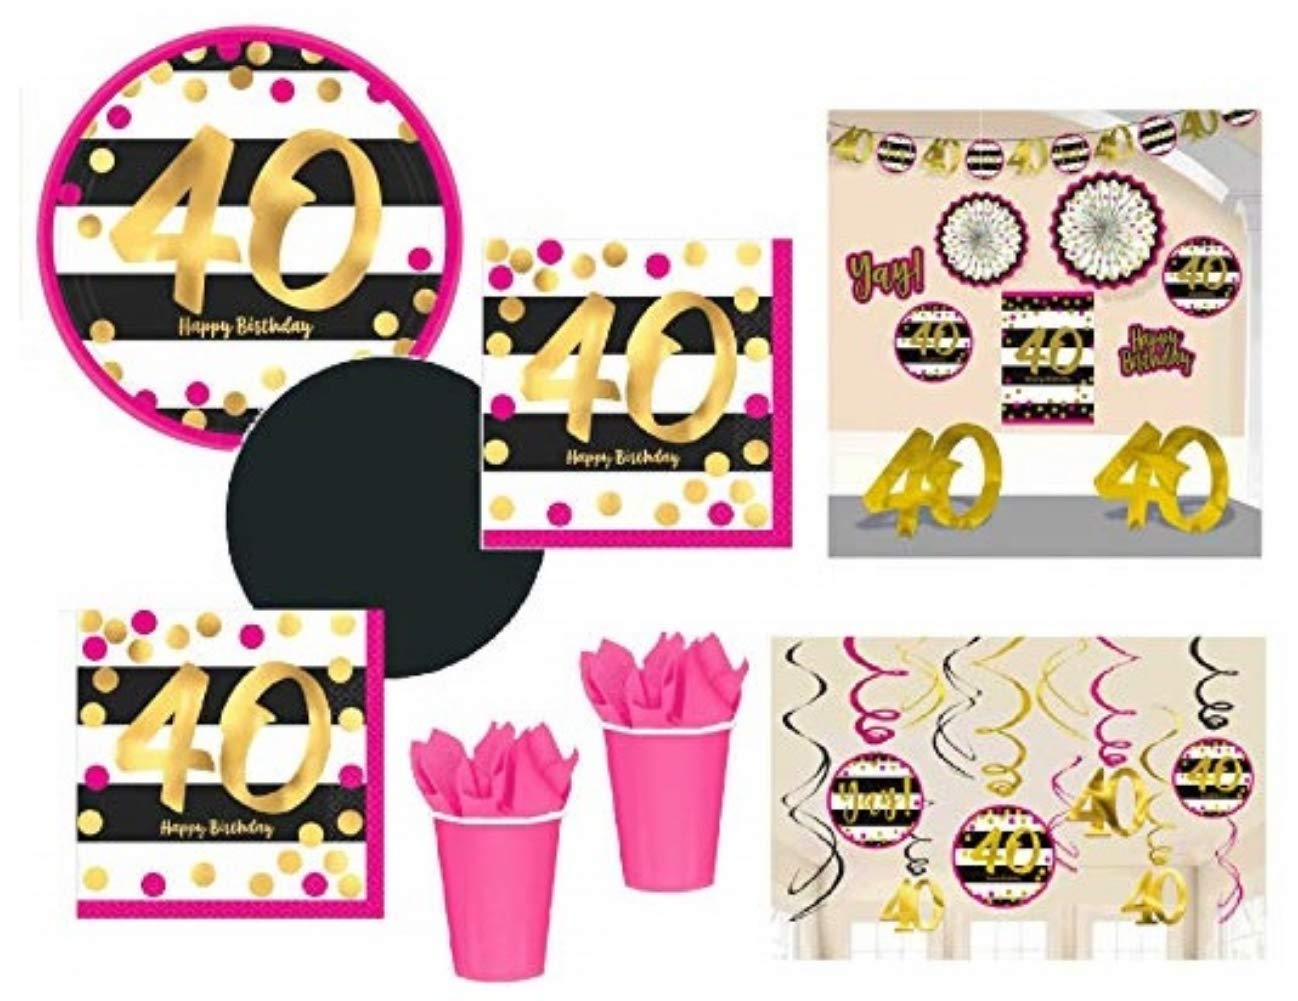 FAKKOS Design 40th Birthday Decorations and Party Supplies in Pink Gold Black foil for 24 Guests Includes Plates, Cups, Napkins, Deluxe Decorations Kit